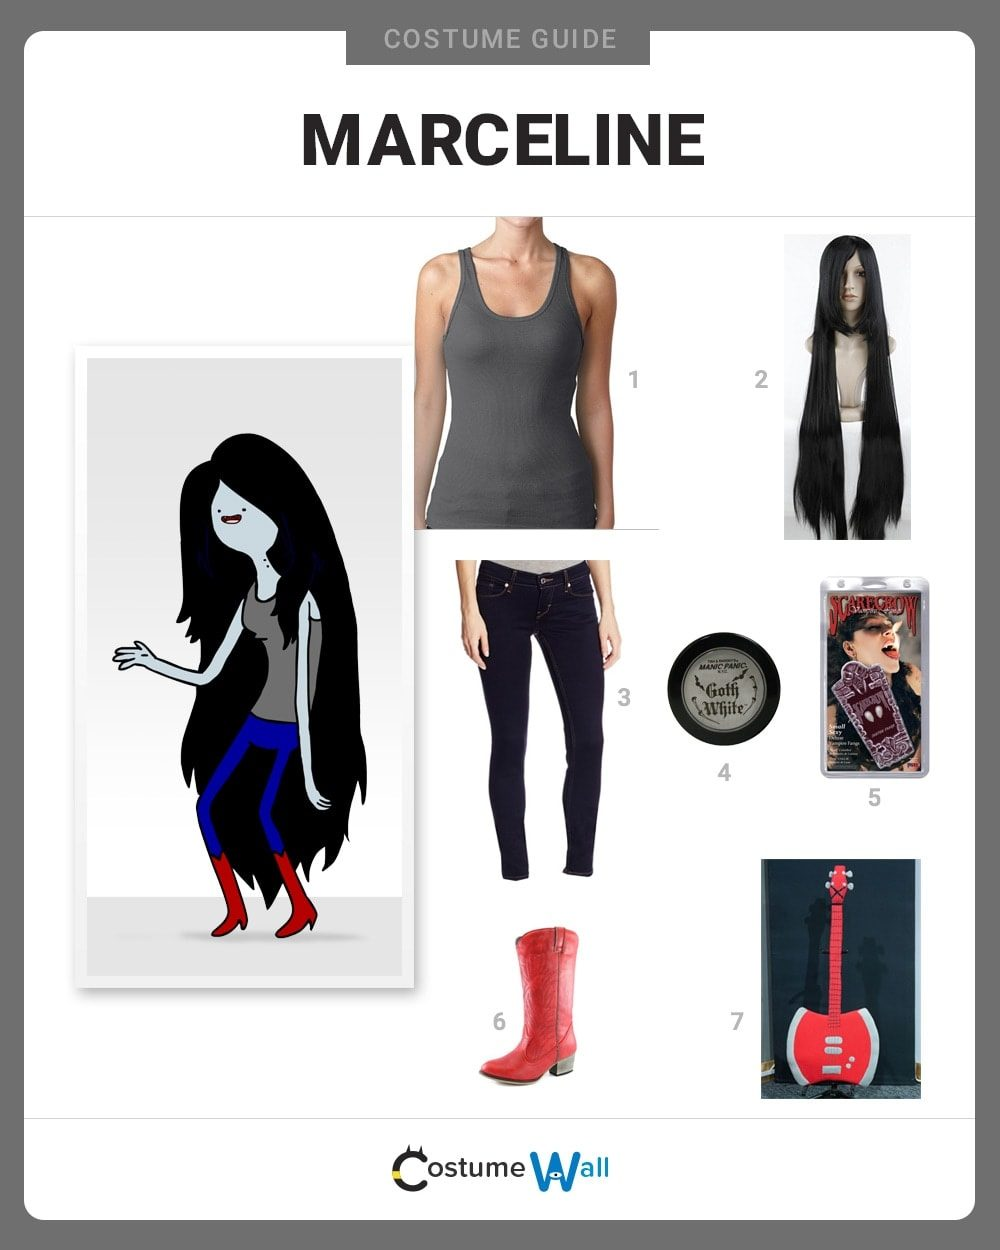 Cartoon Characters You Can Dress Up As : Marceline dress costume imgkid the image kid